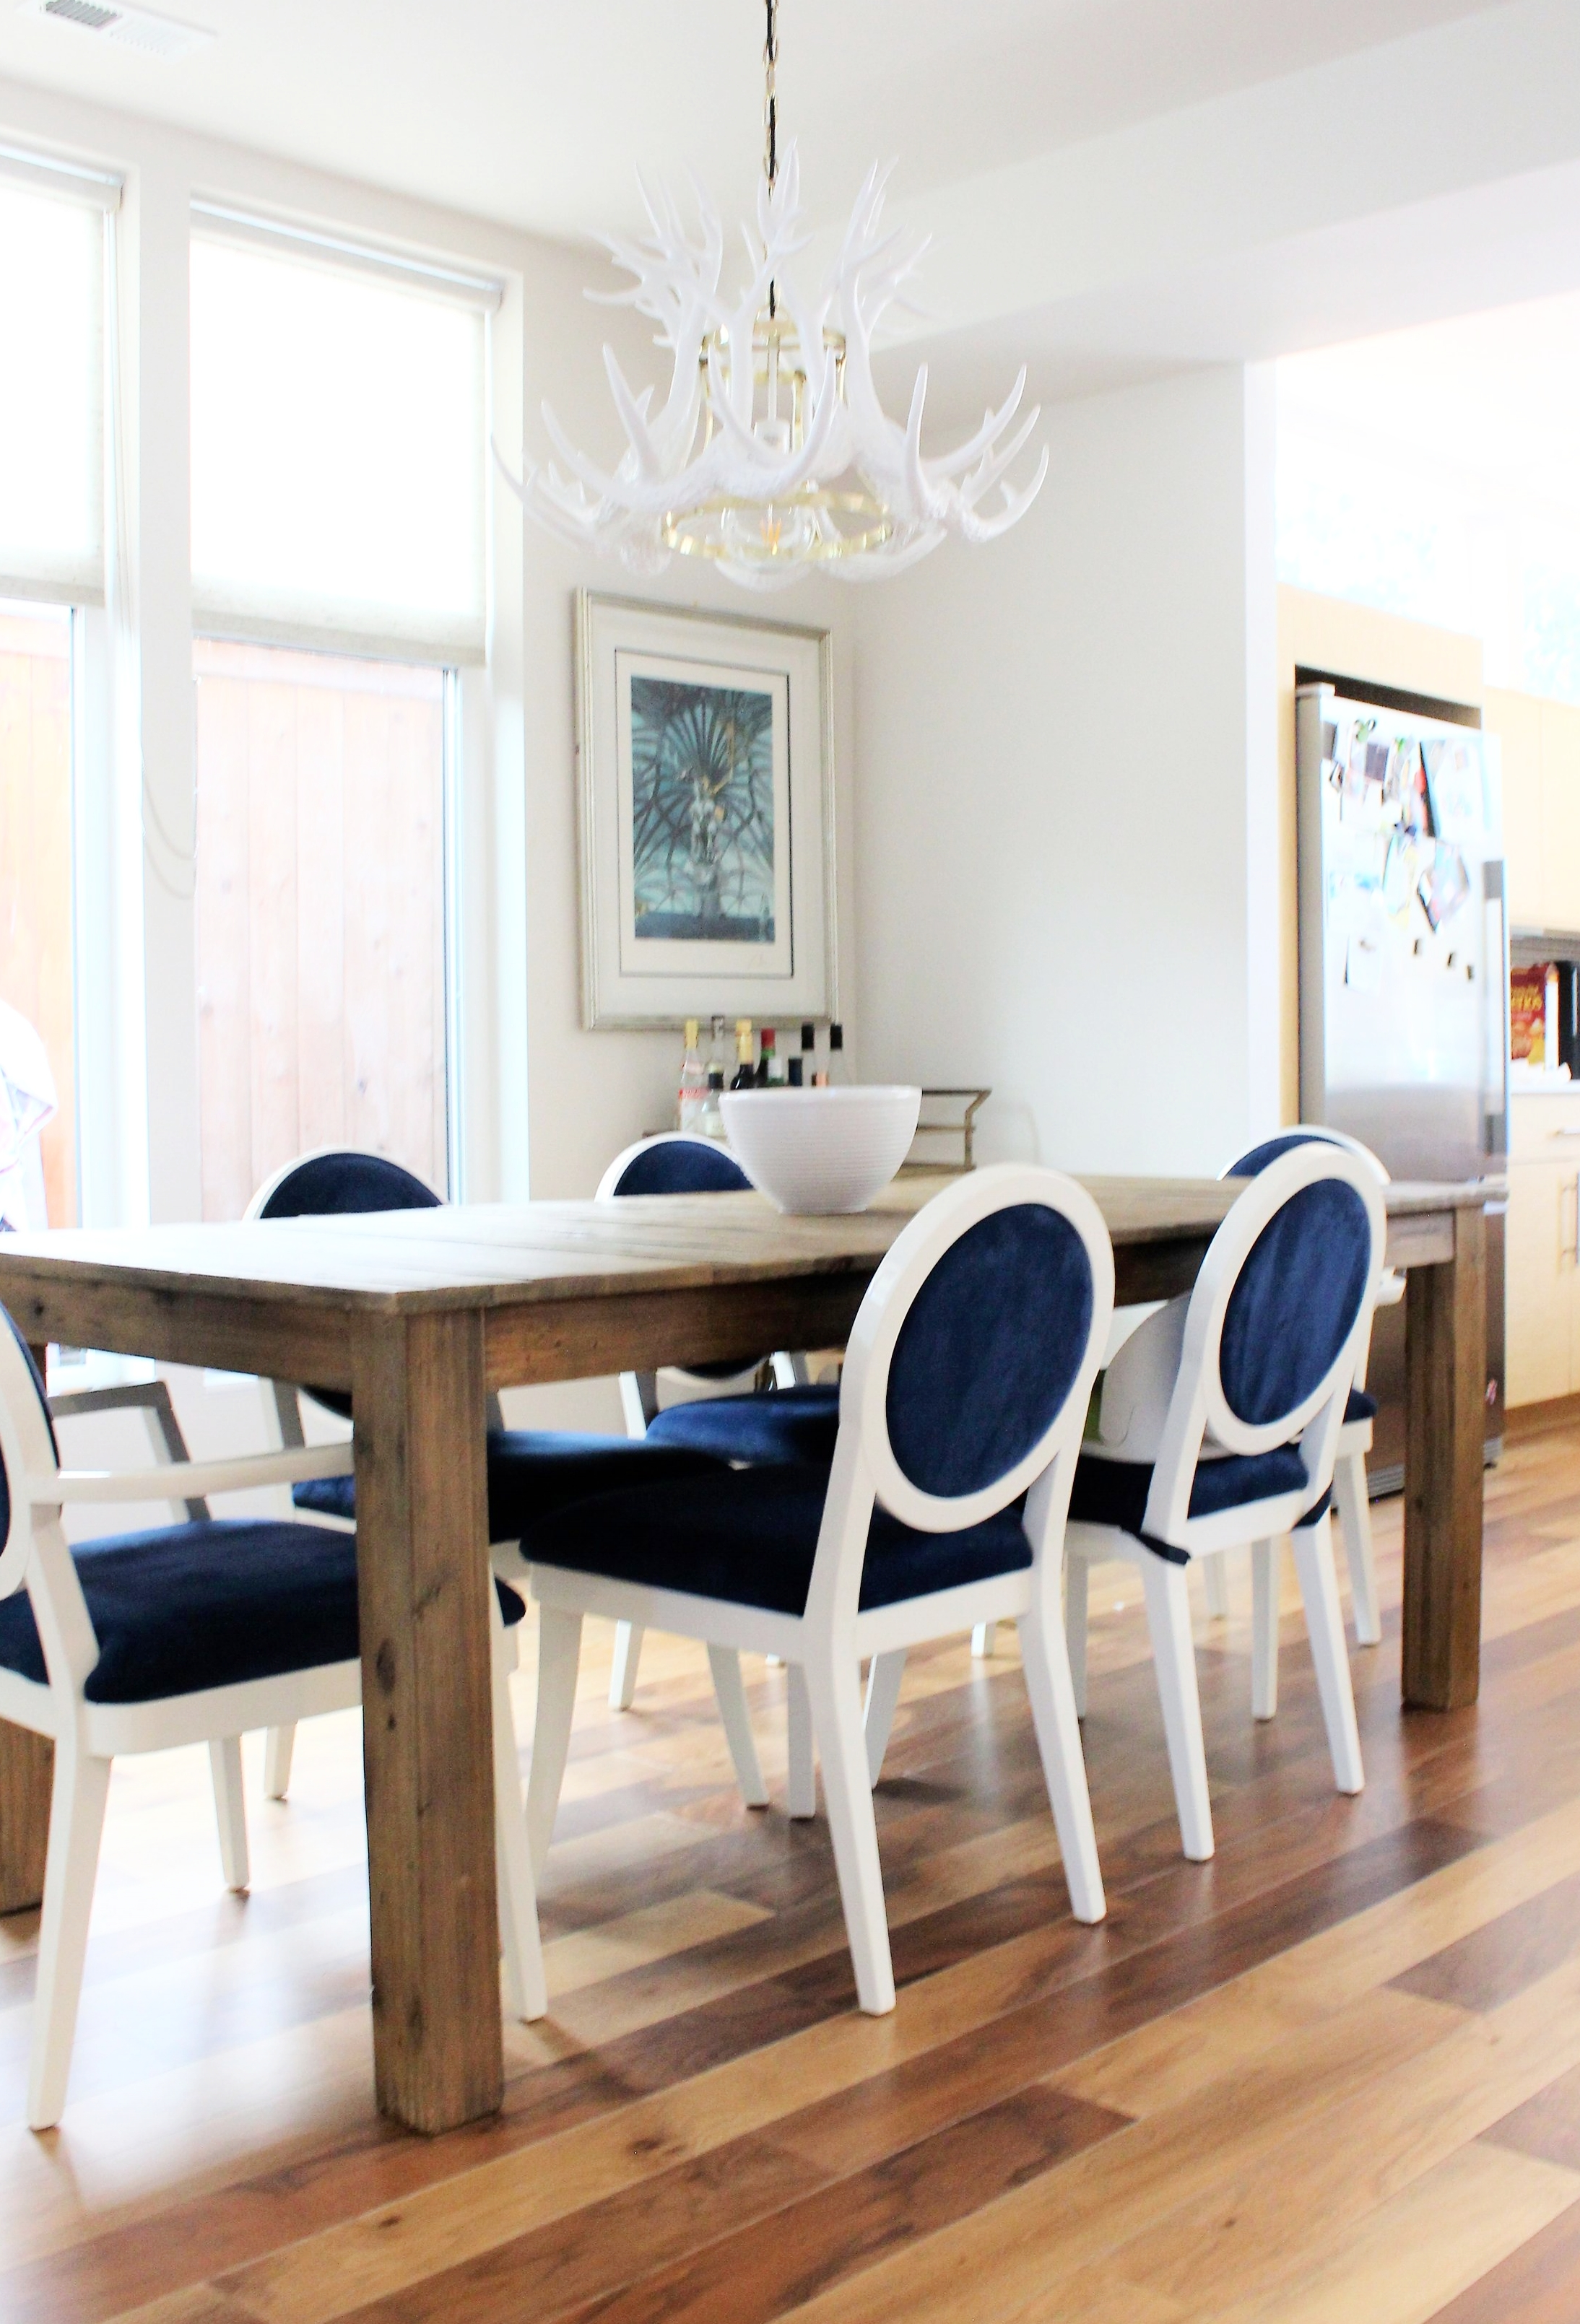 The contrast of this rustic wood dining table and the crisp white and cobalt velvet seating gives this dining room an eclectic, yet sophisticated look. Notice the booster seat added to one of the chairs so their toddler can join them at the table.